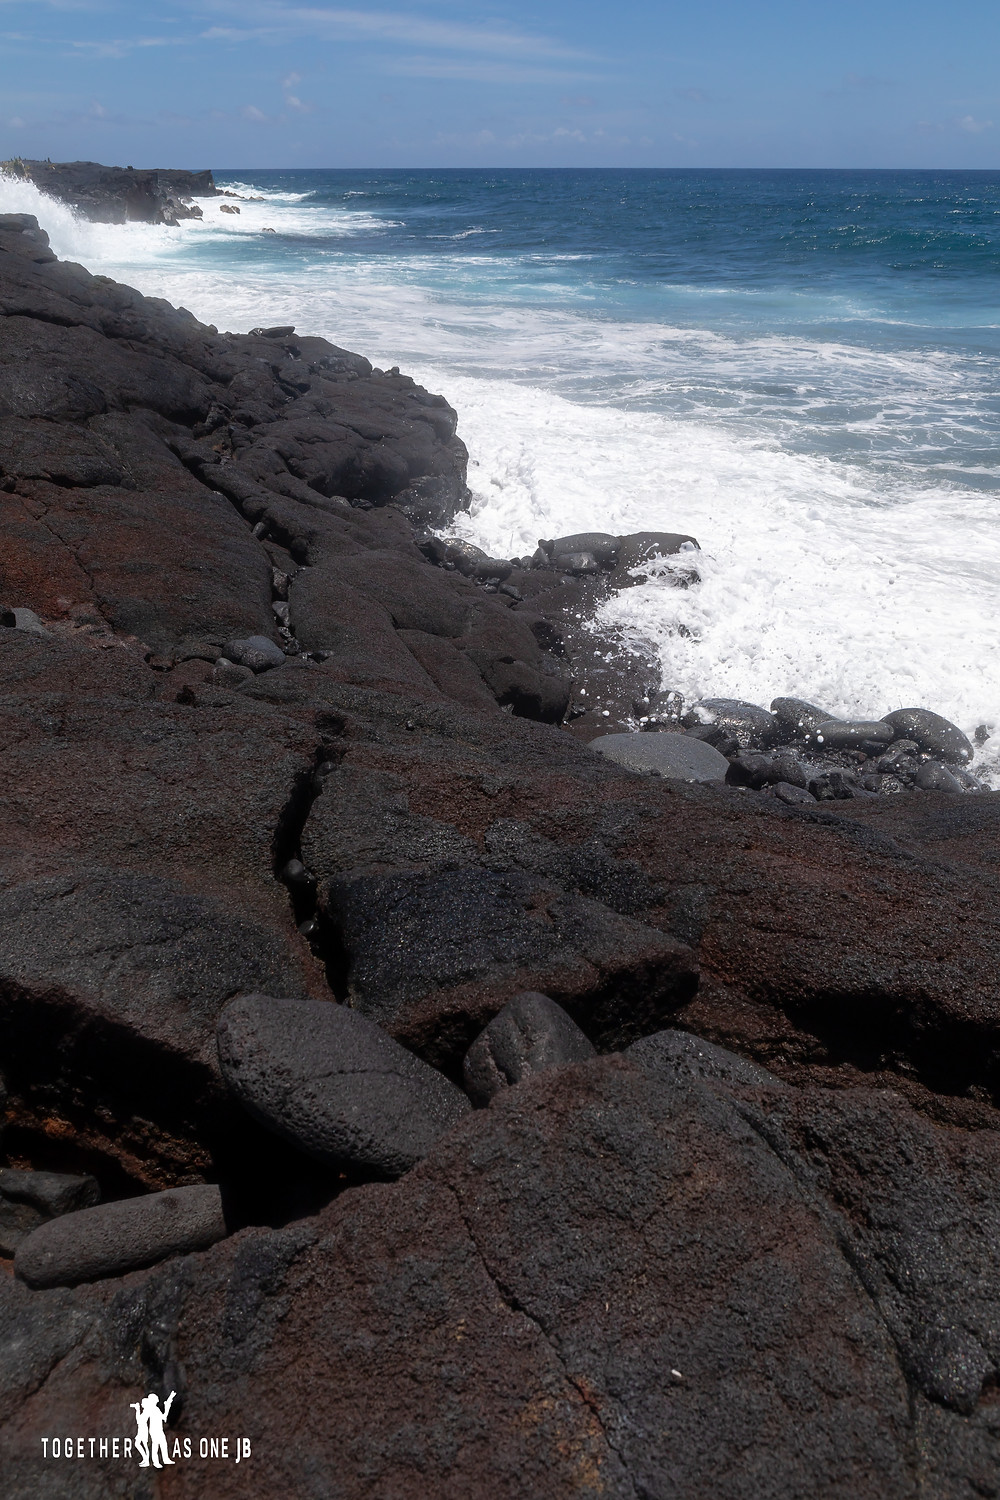 The shore of KAIMU KALAPANA NEW BLACK SAND BEACH  with the lava rocks and the white foam of the ocean waves